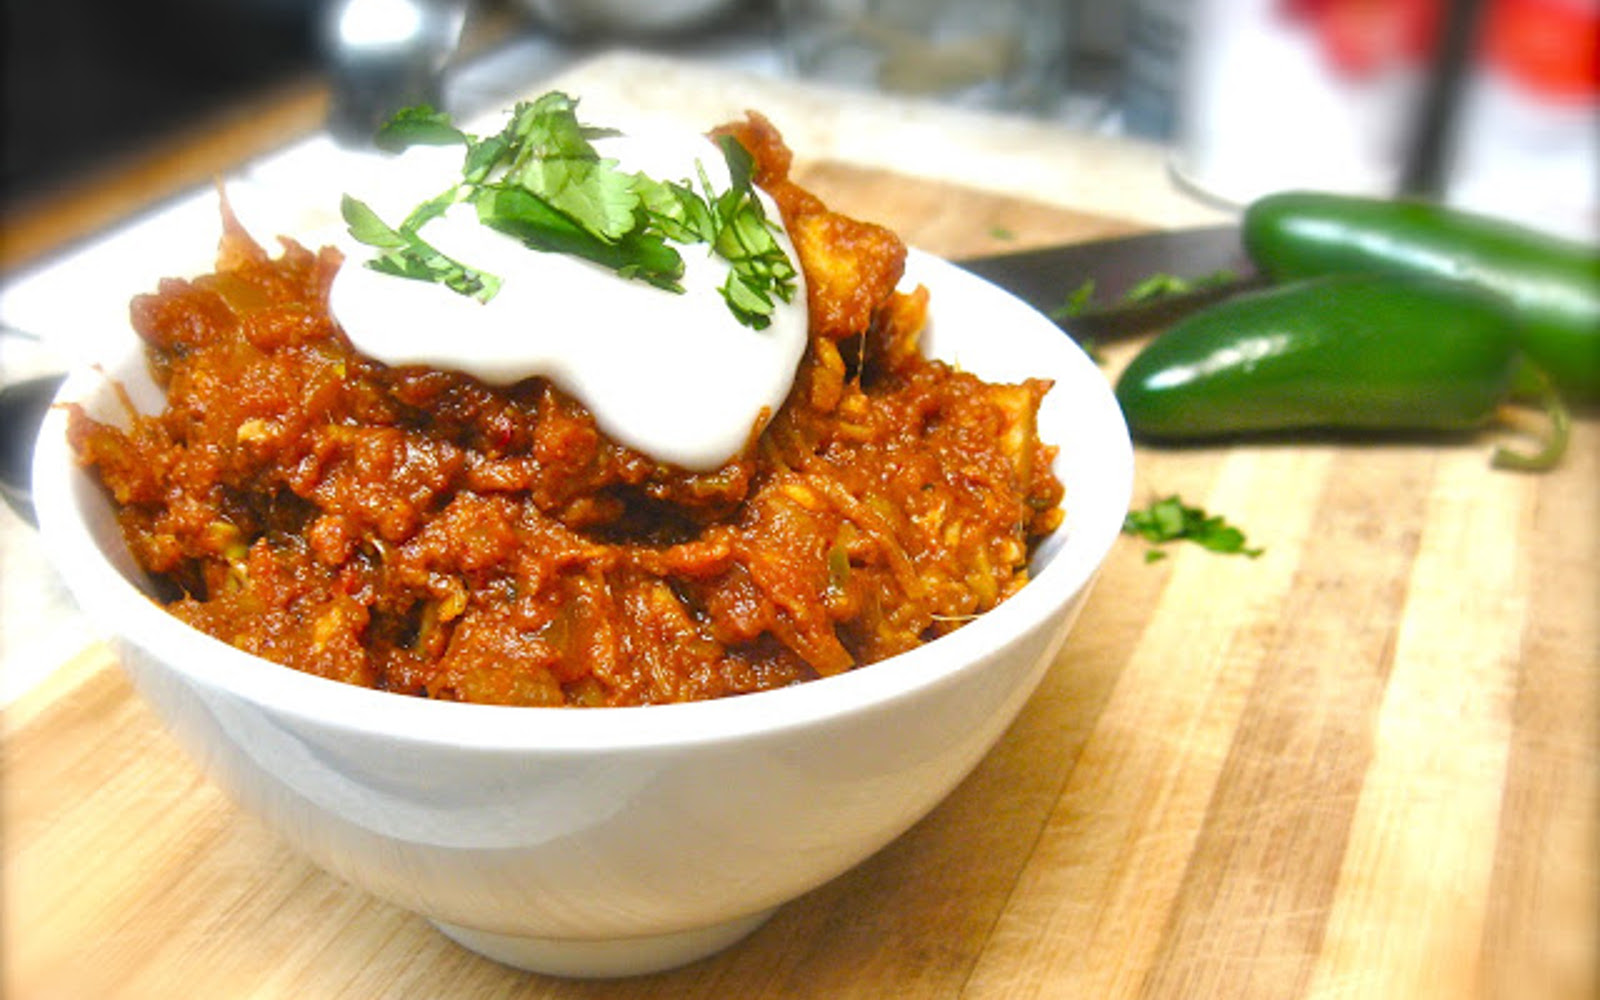 Vegan grain-free ndian Spiced Pumpkin and Jackfruit Chili topped with vegan cream